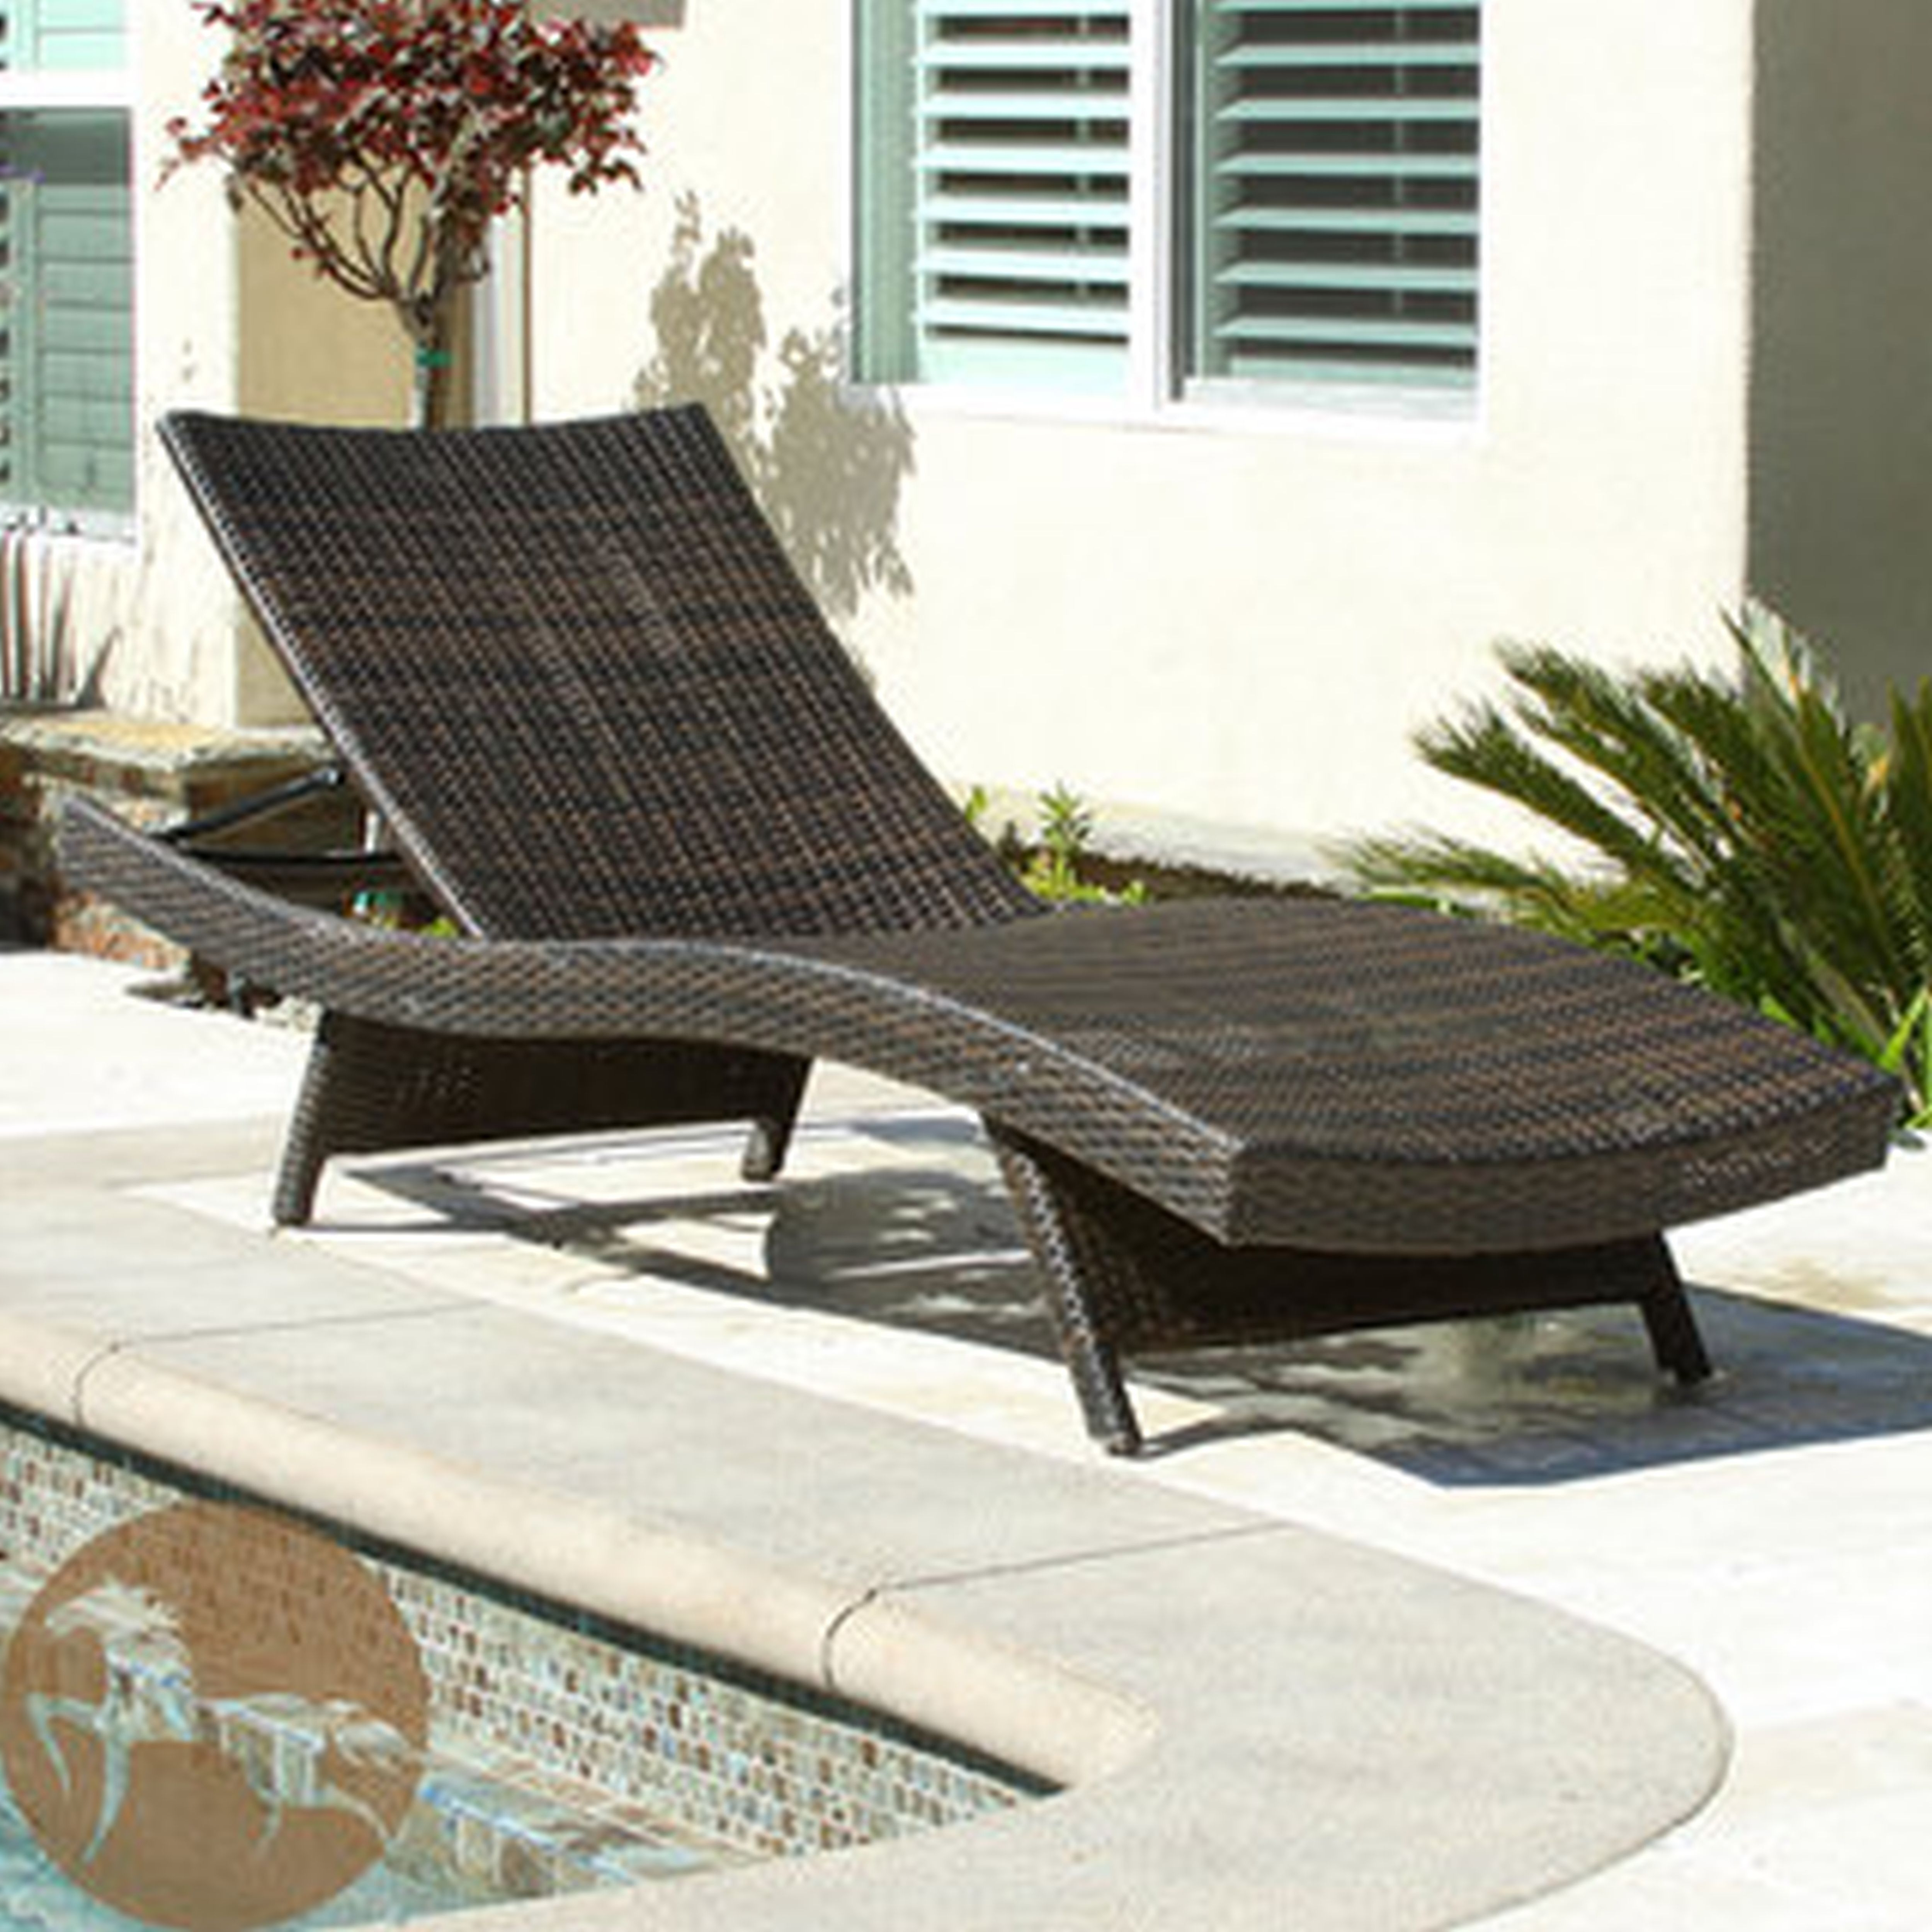 Famous Plastic Chaise Lounge Chairs For Outdoors For Outdoor : Patio Chaise Lounge Chairs Pool Lounge Chairs Chaise (View 13 of 15)